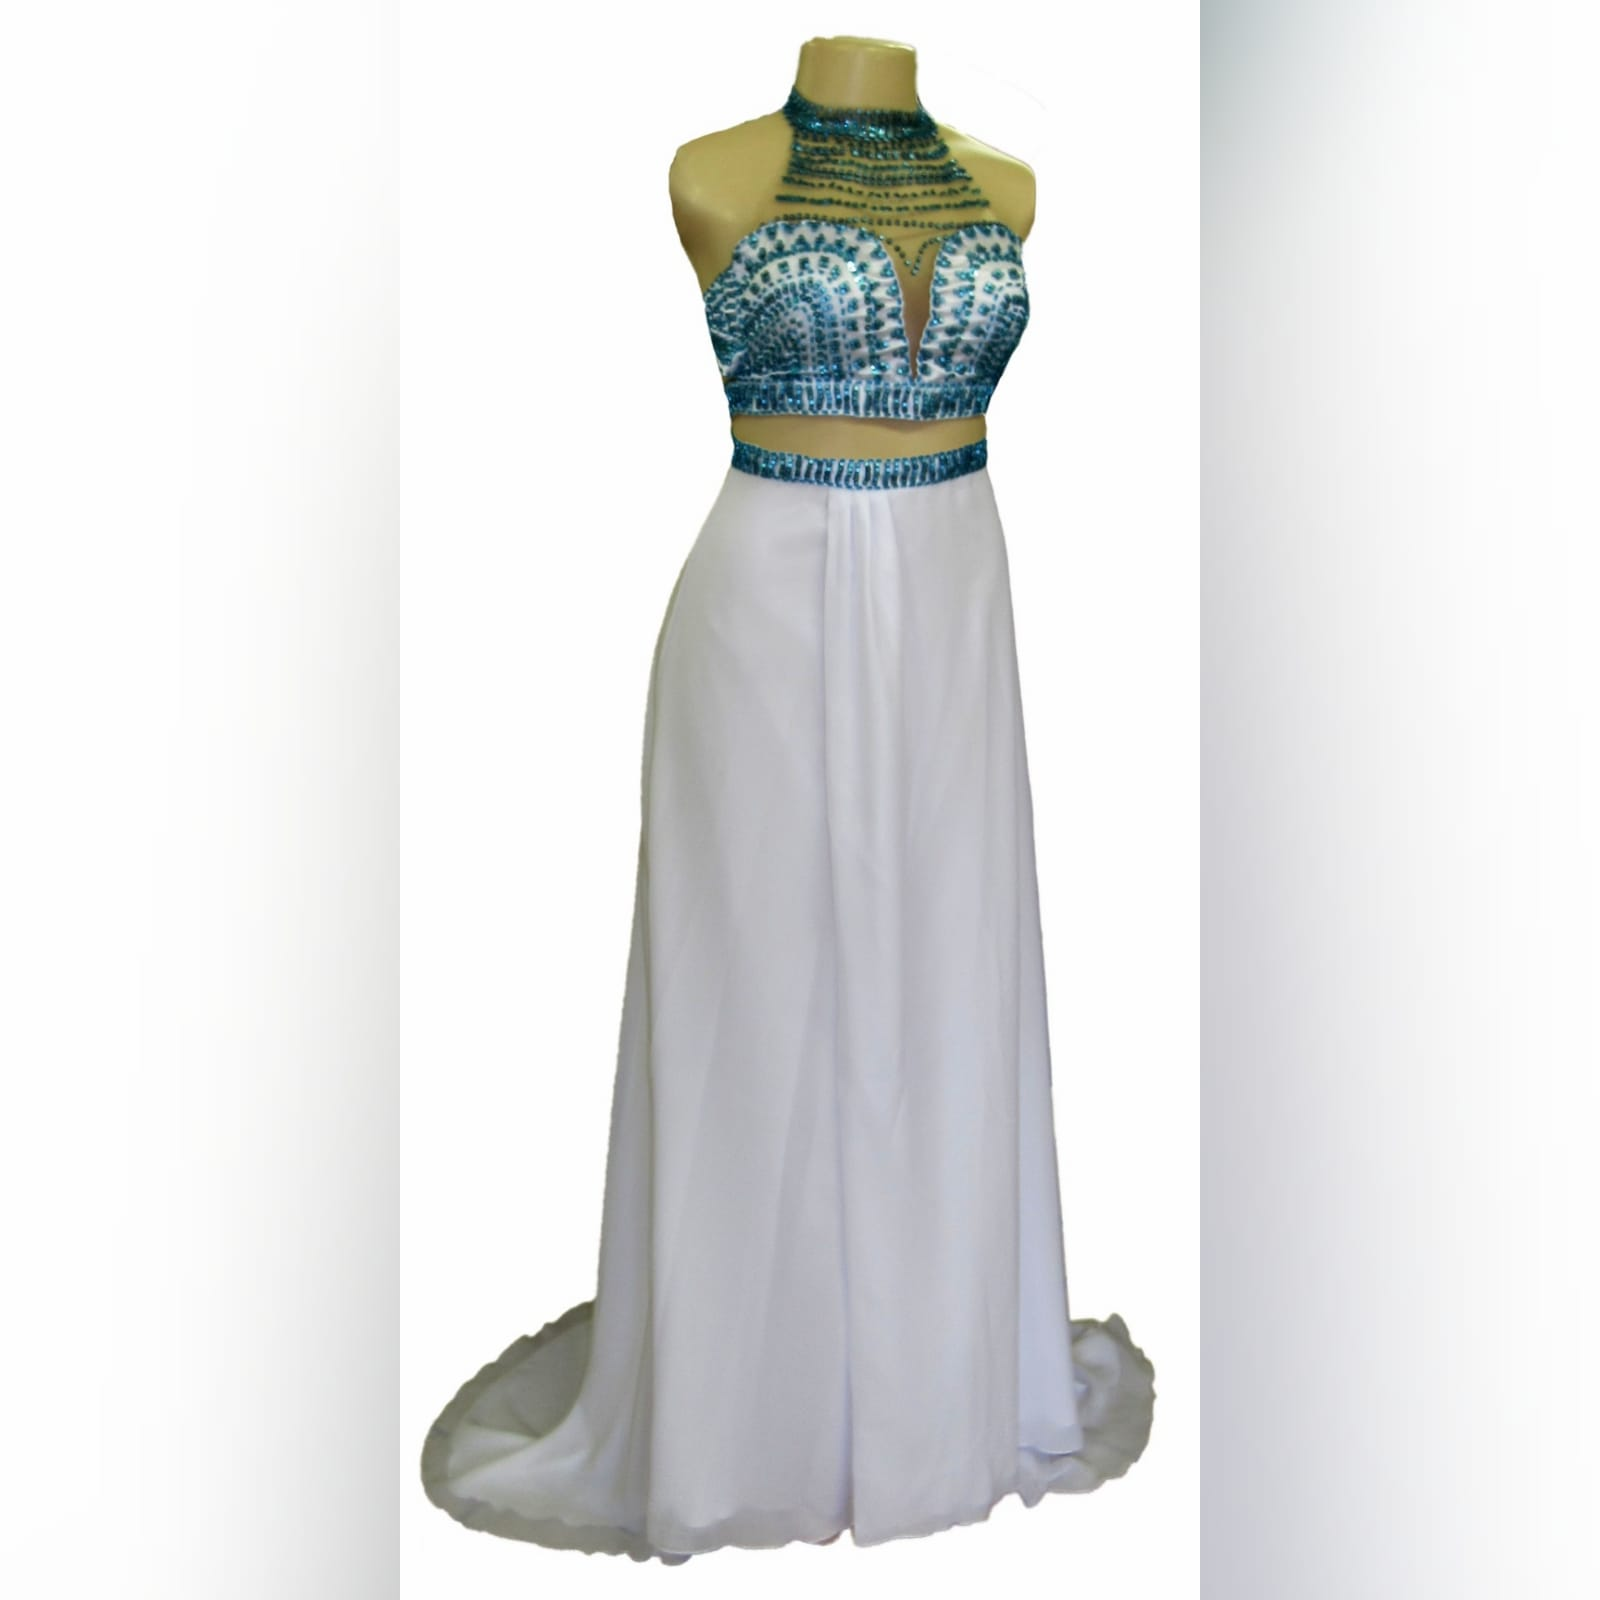 2 piece white and turquoise formal dress 9 2 piece white and turquoise formal dress. Crop top beaded with turquoise beads, chiffon skirt with a crossed slit and a train and a beaded waistband.